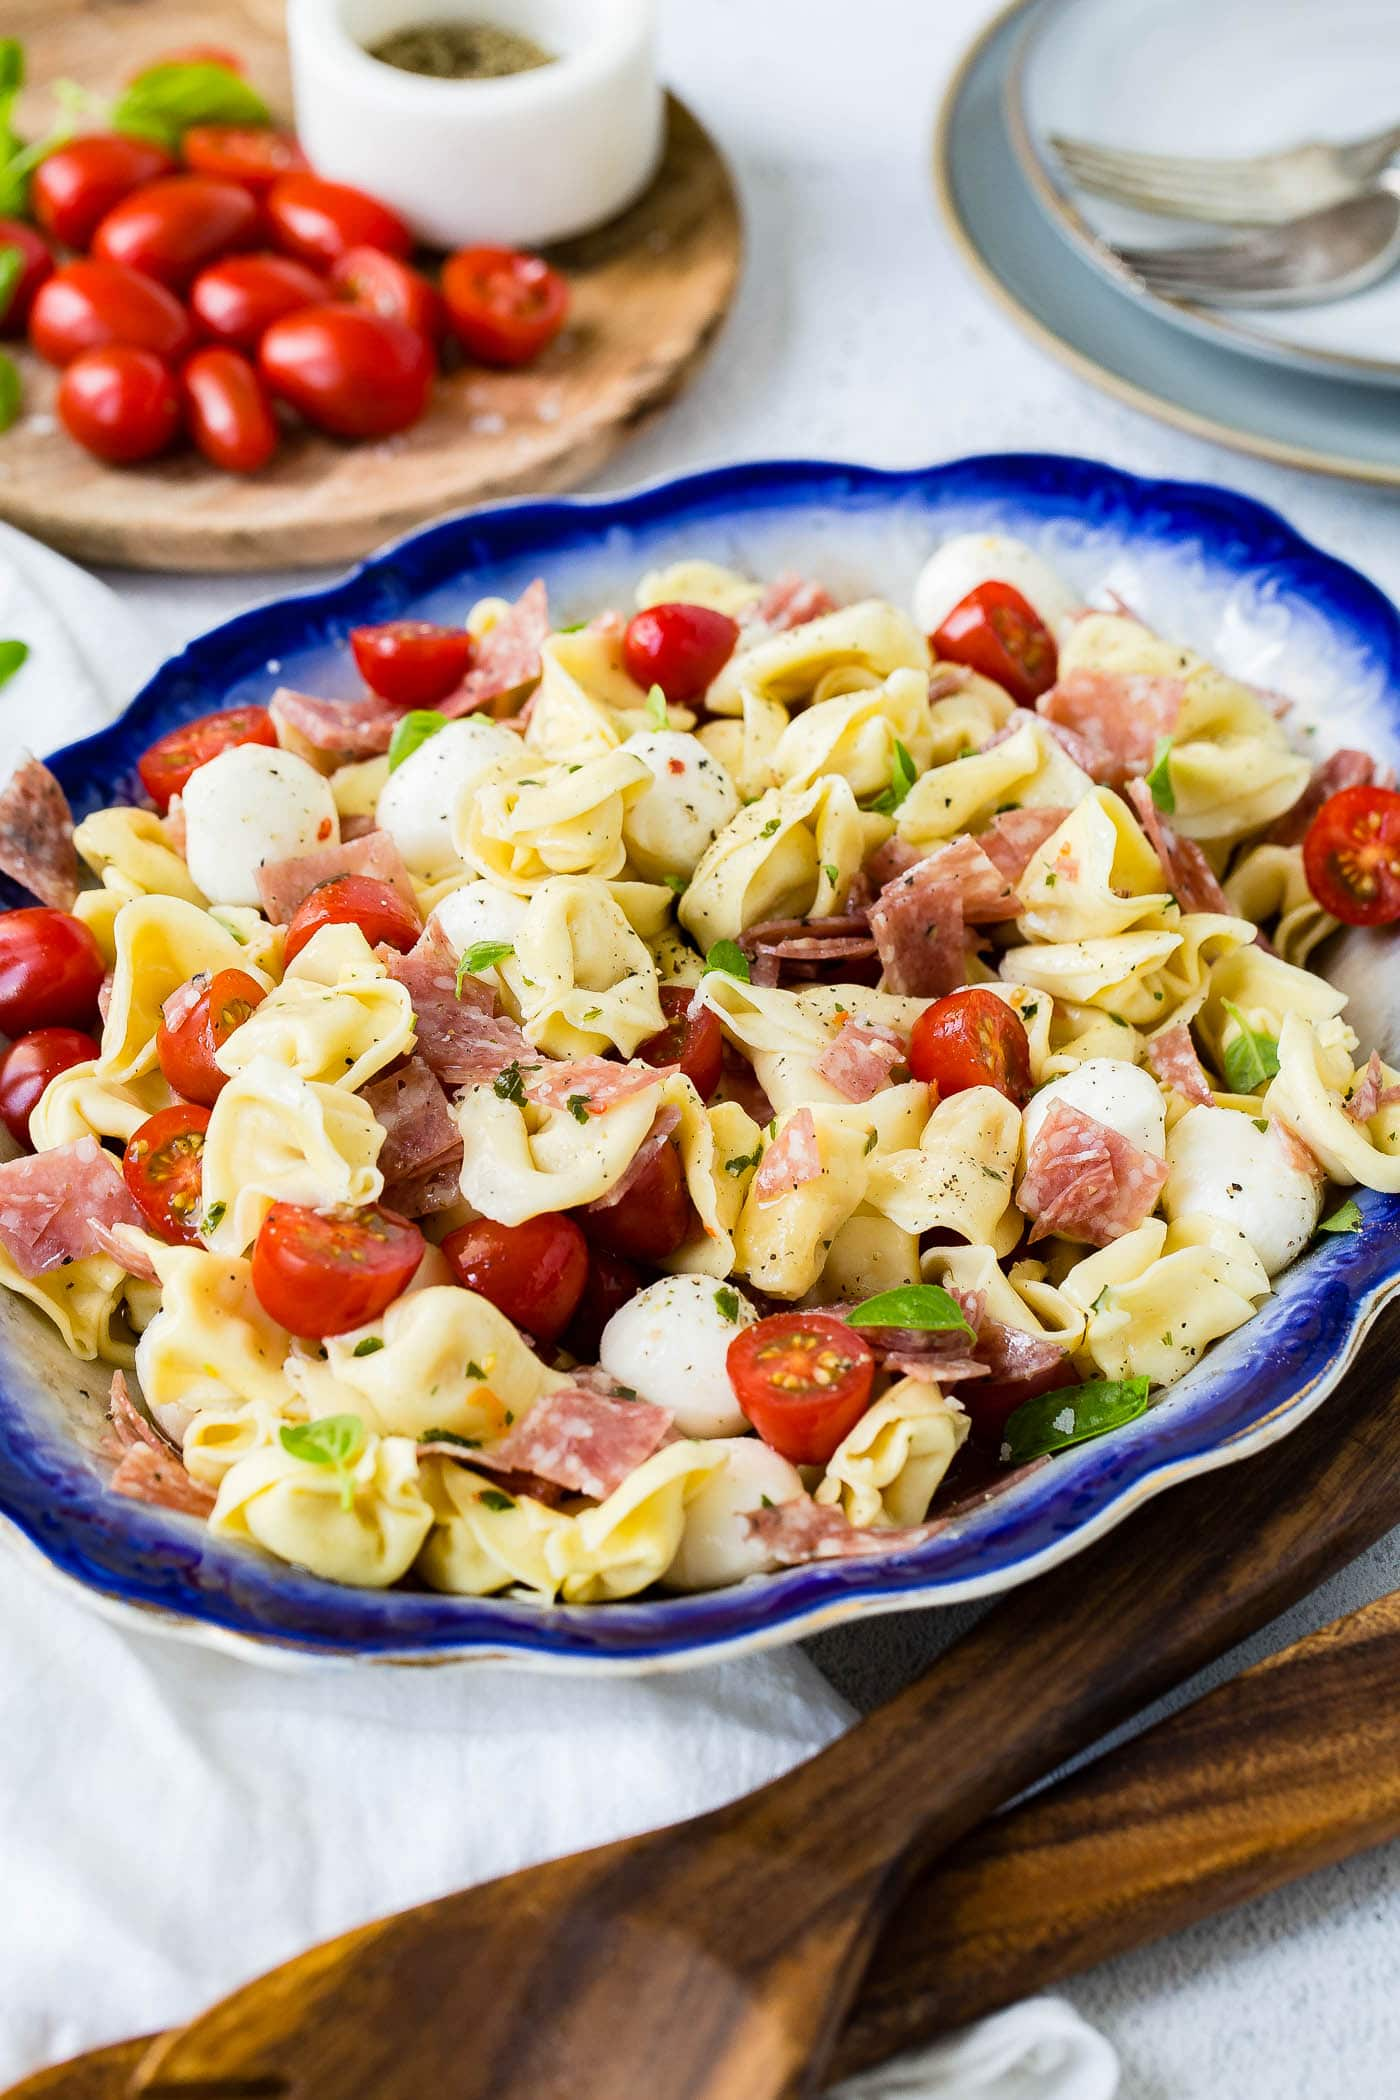 A blue edged serving dish of 5 minute salami tortellini salad. There are chunks of salami, sliced grape tomatoes, and mozzarella balls mixed in with the tortellini. A wooden cutting board with grape tomatoes is in the background.